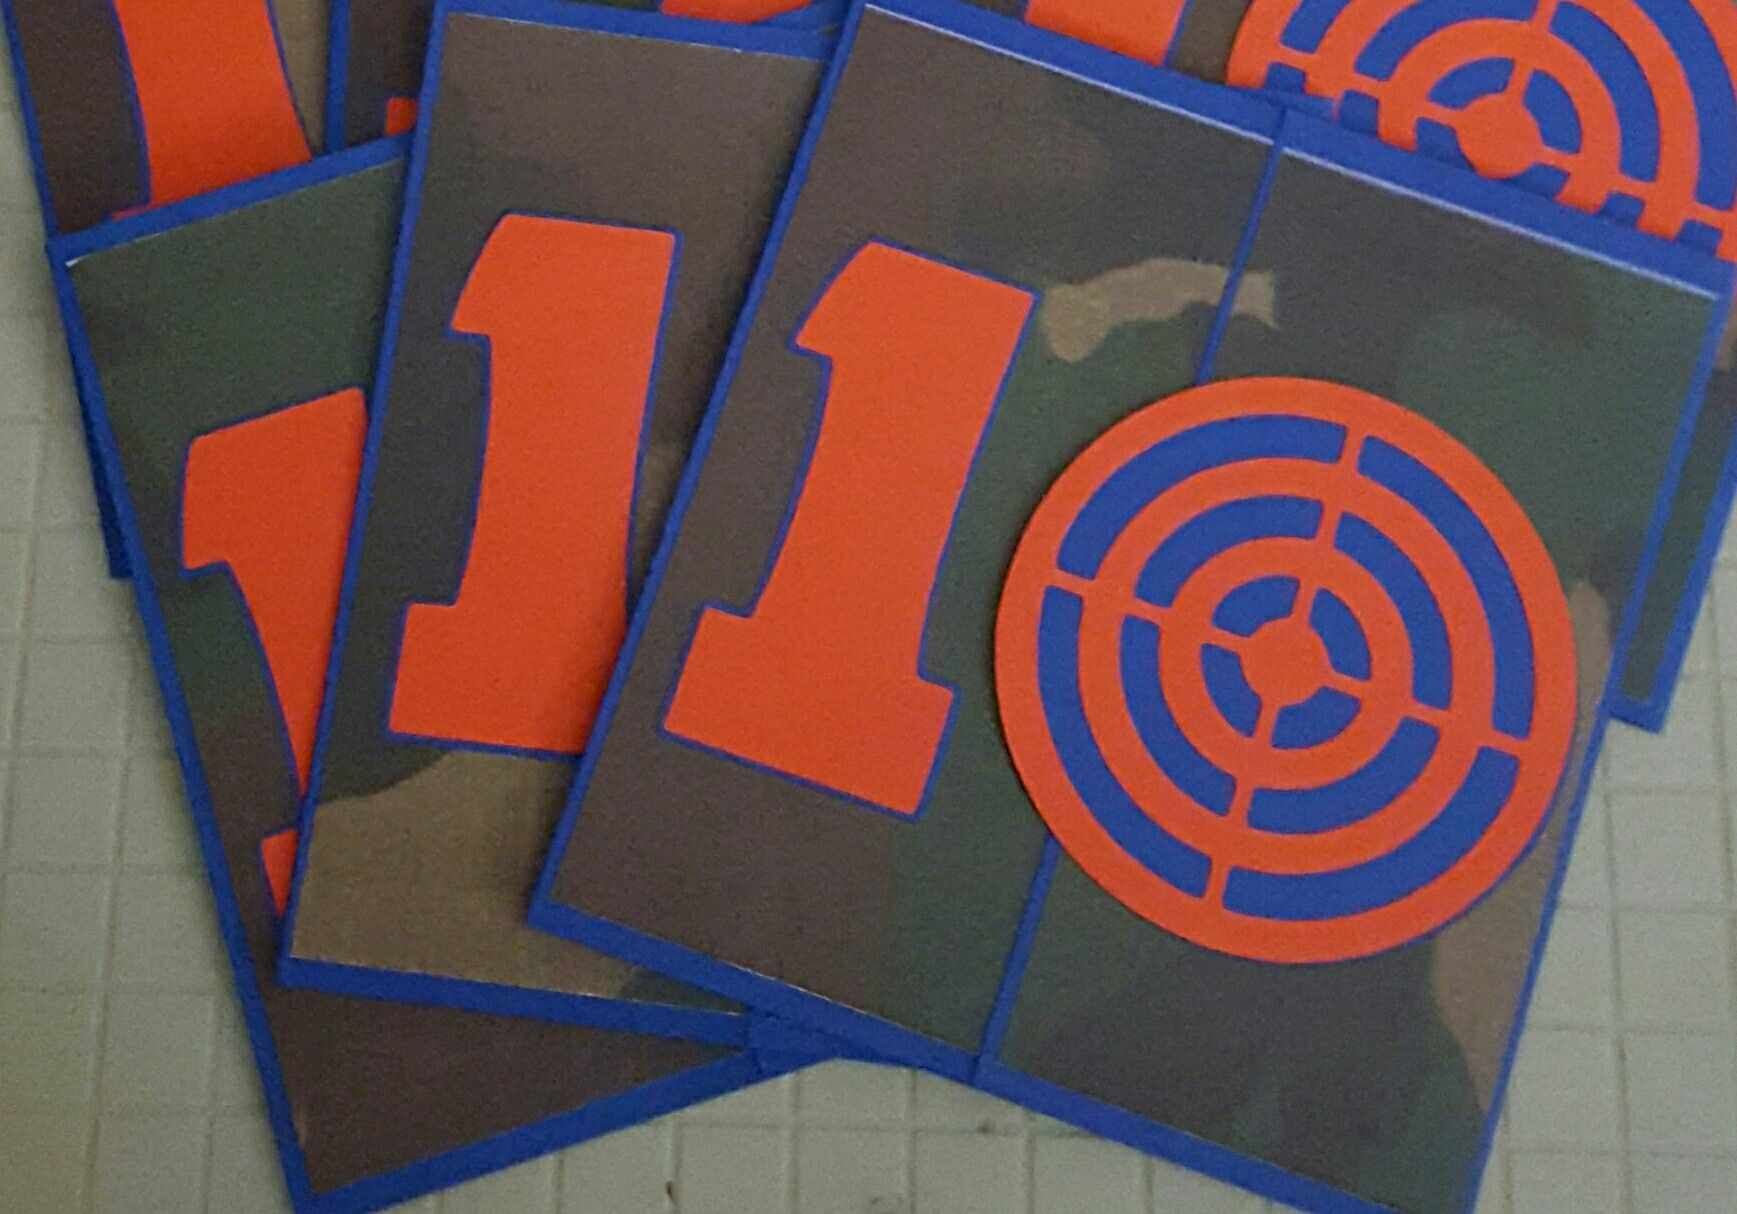 Nerf War Party Invitations Target Invitations | Kid Party Themes ...